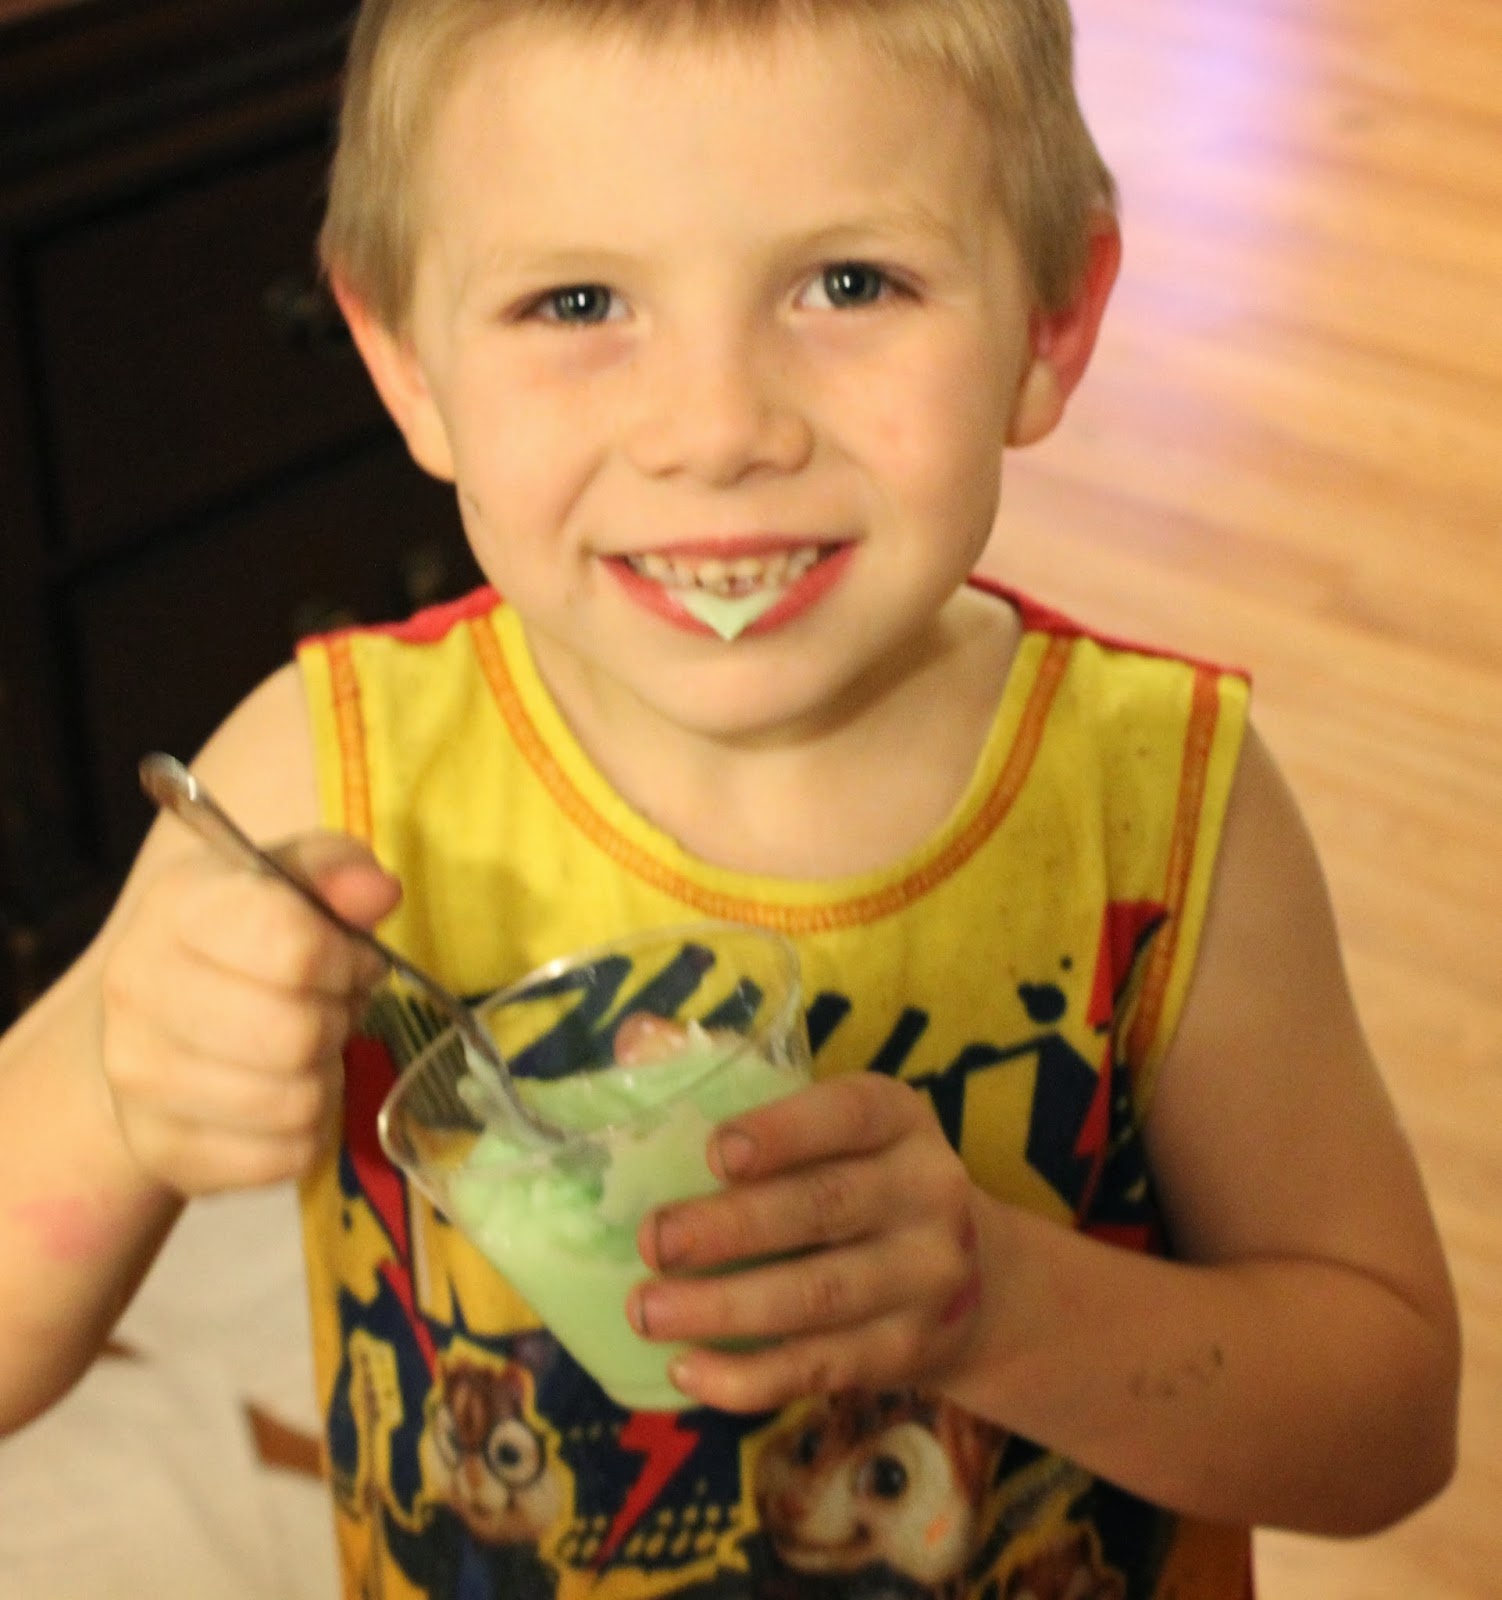 You've Got Some Oobleck To Make!